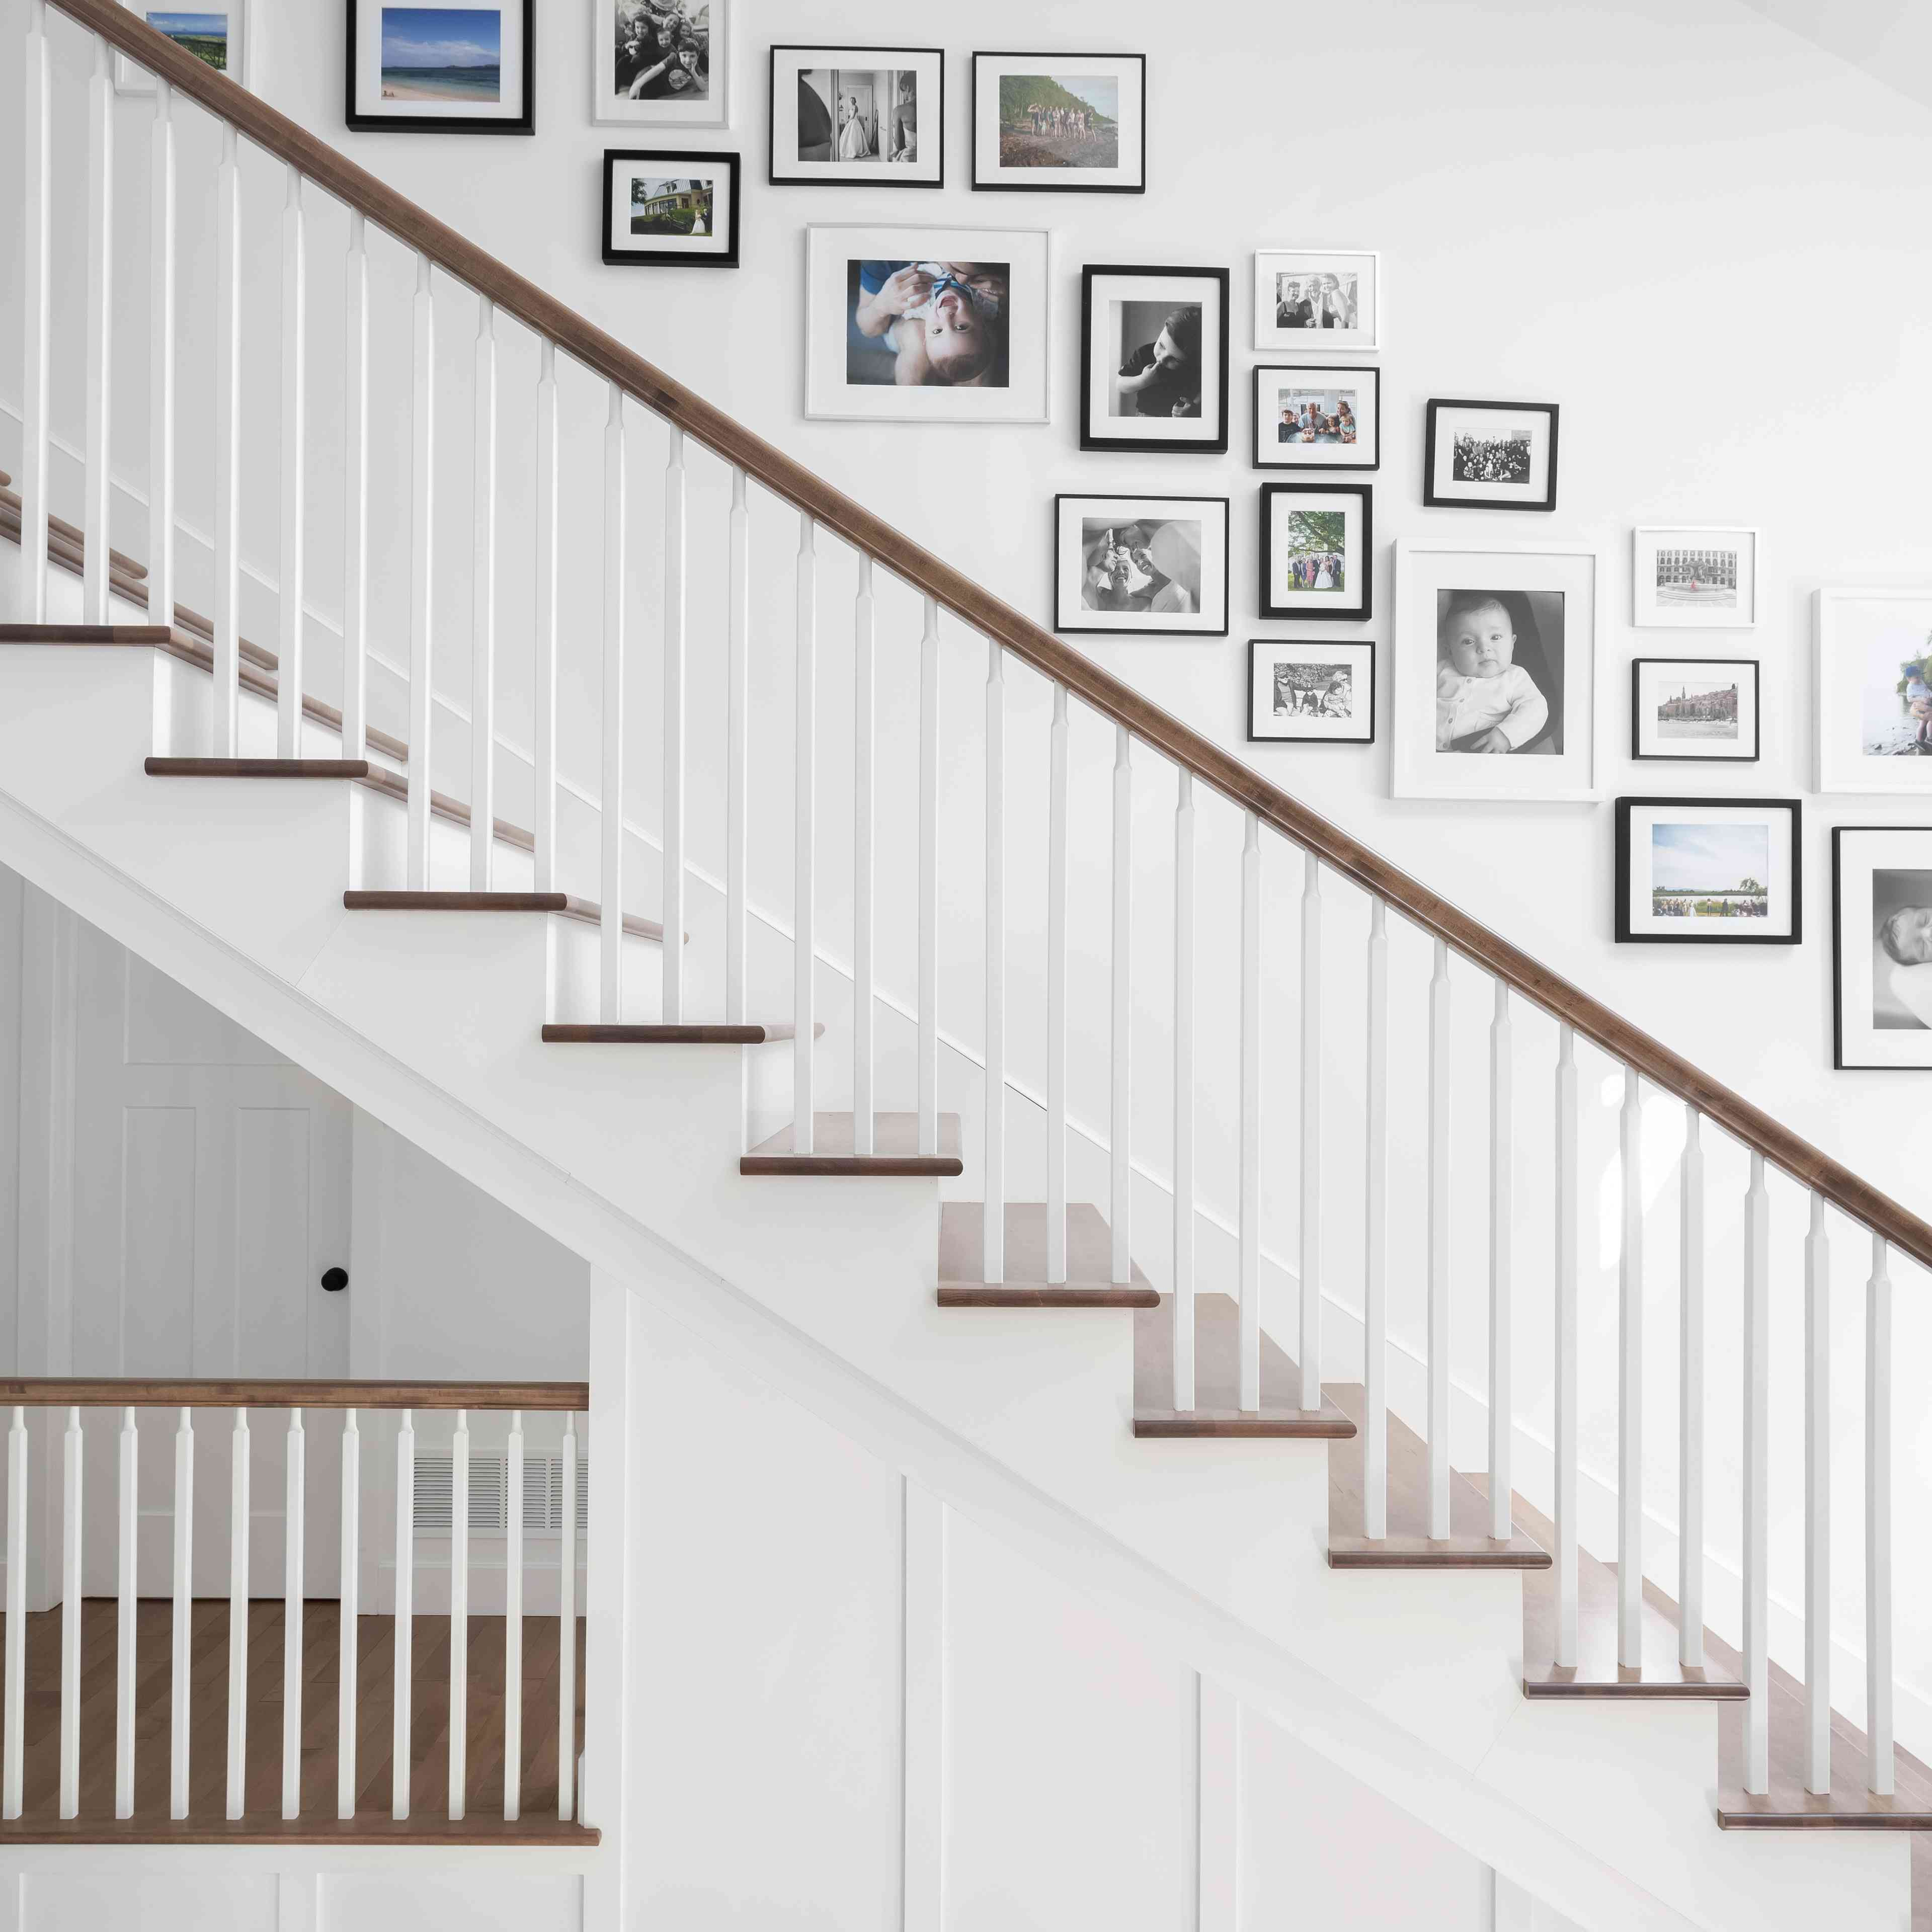 Family photos hung on the wall of a staircase